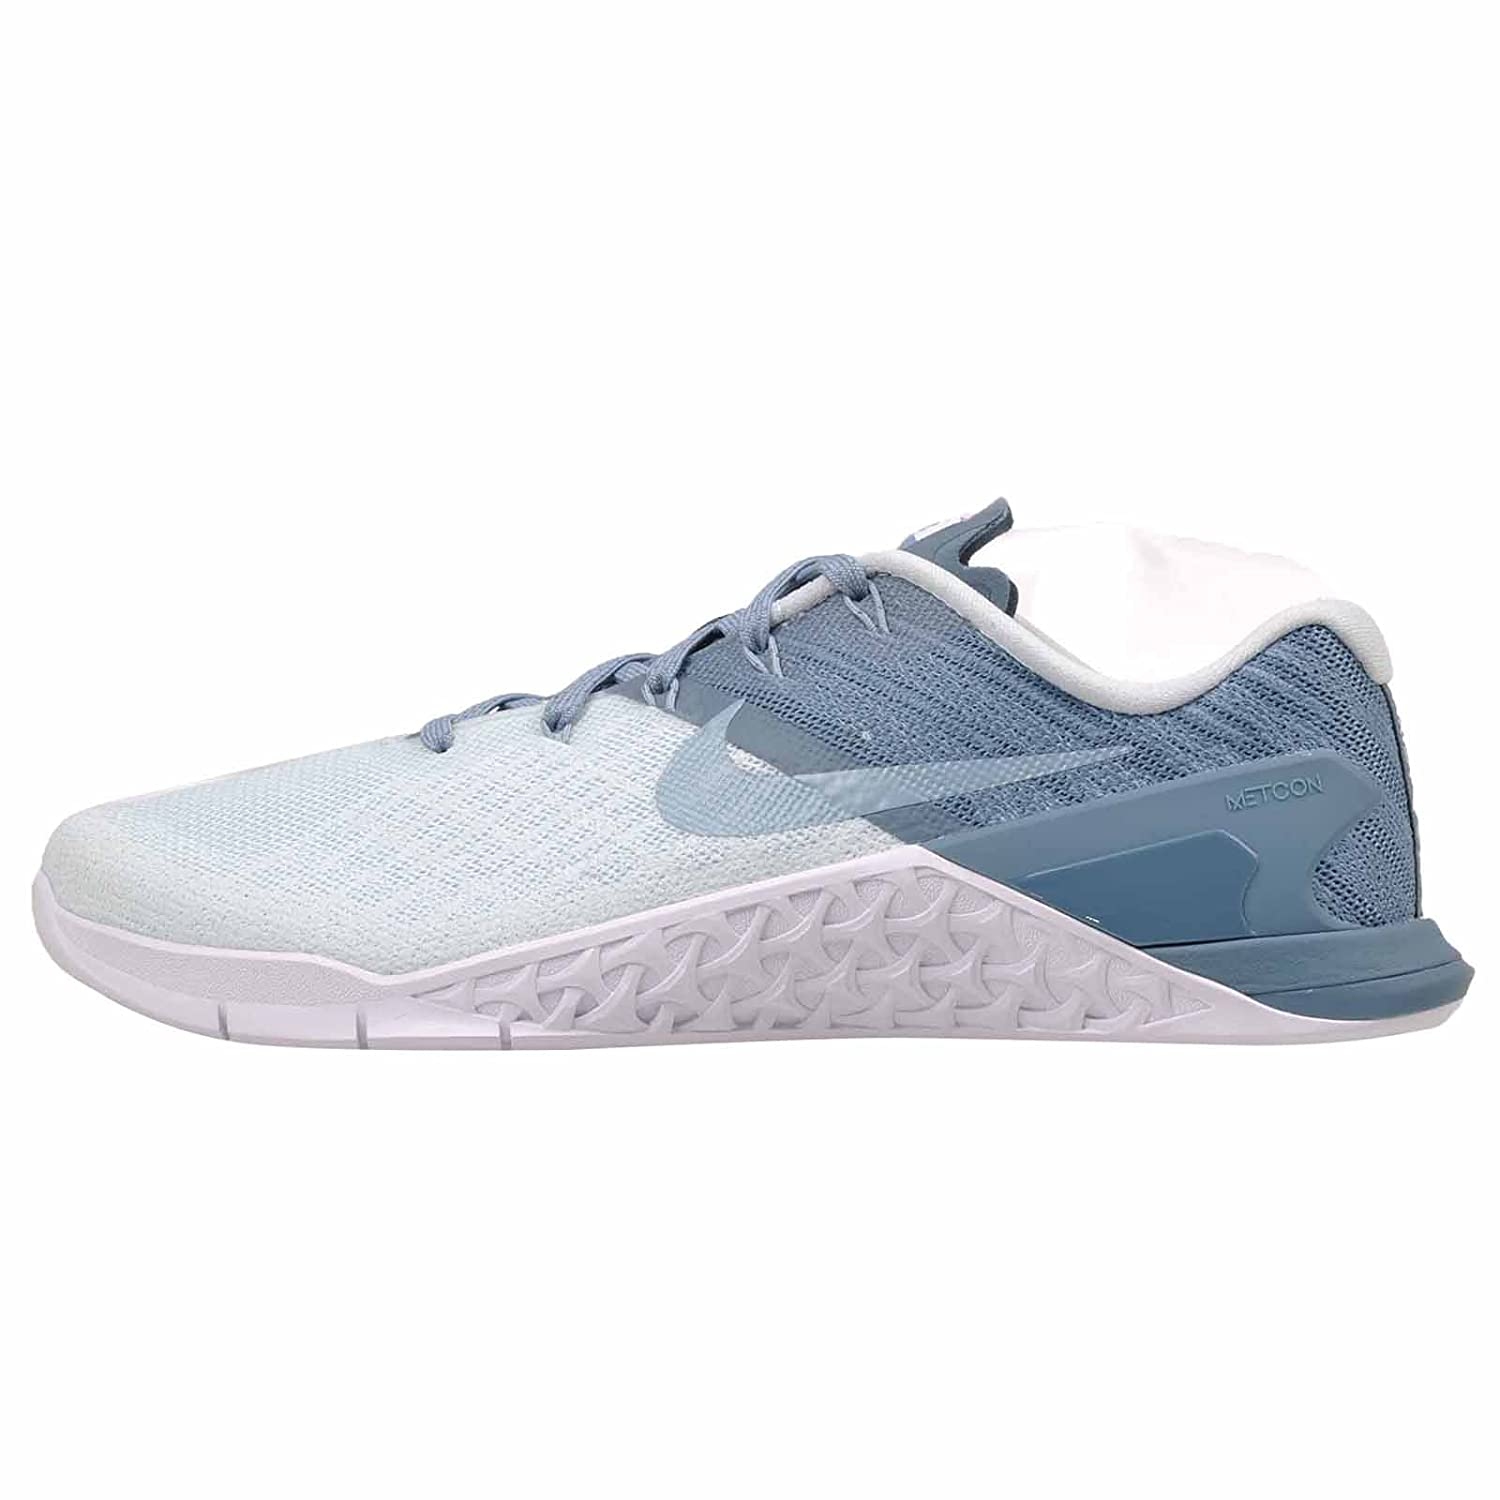 Nike Womens Metcon 3 Training Shoes B01N7ZUHM5 7 B(M) US|Glacier Blue / Mica Blue